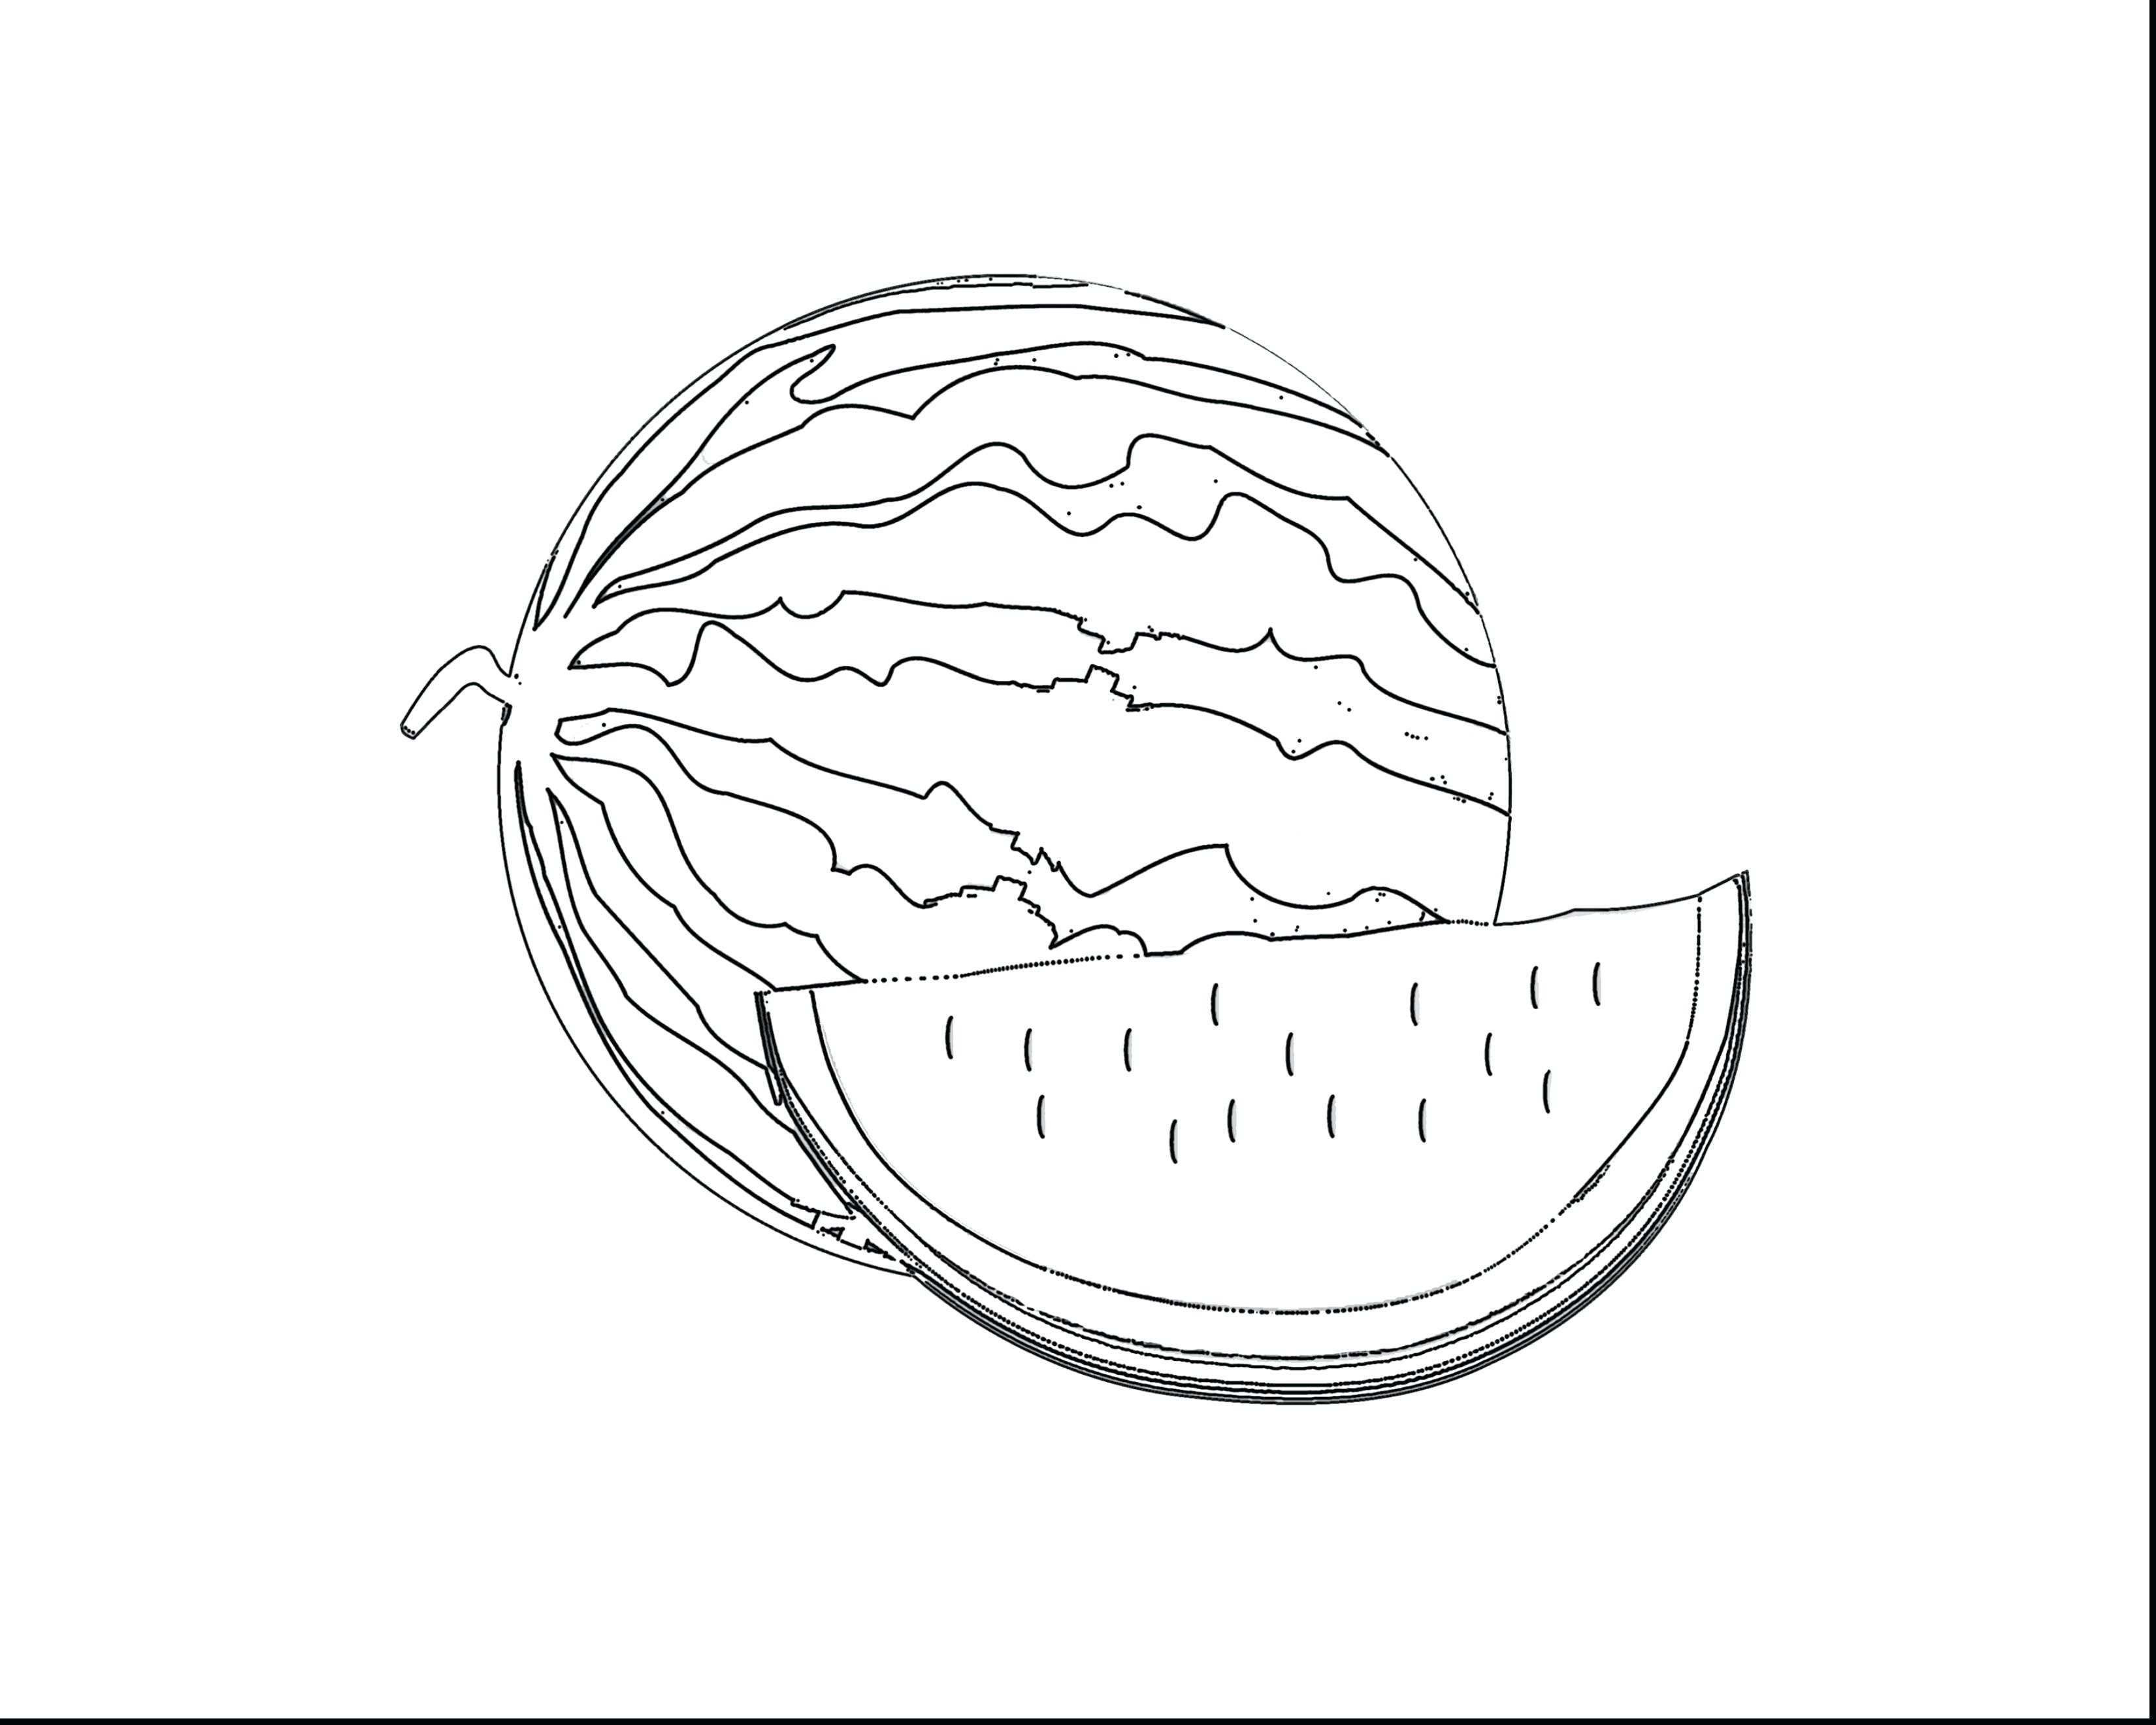 Watermelon Coloring Page With Wallpapers Mayapurjacouture - Coloring Book , HD Wallpaper & Backgrounds